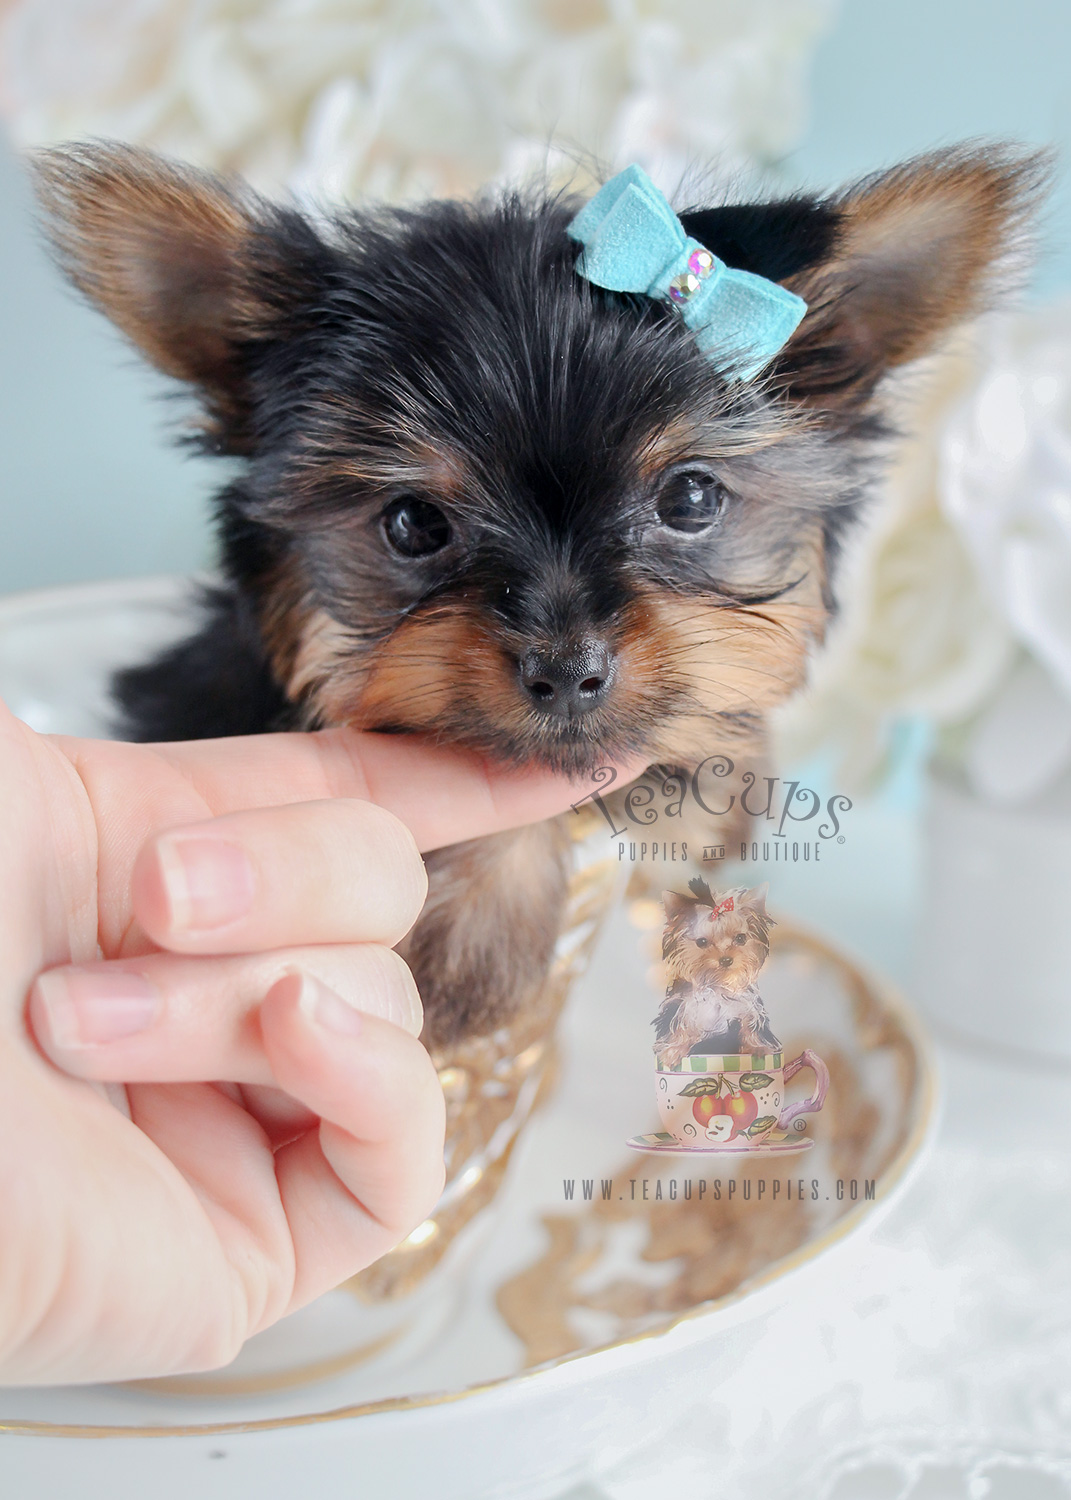 Puppy For Sale #269 Teacup Puppies Tiny Yorkie